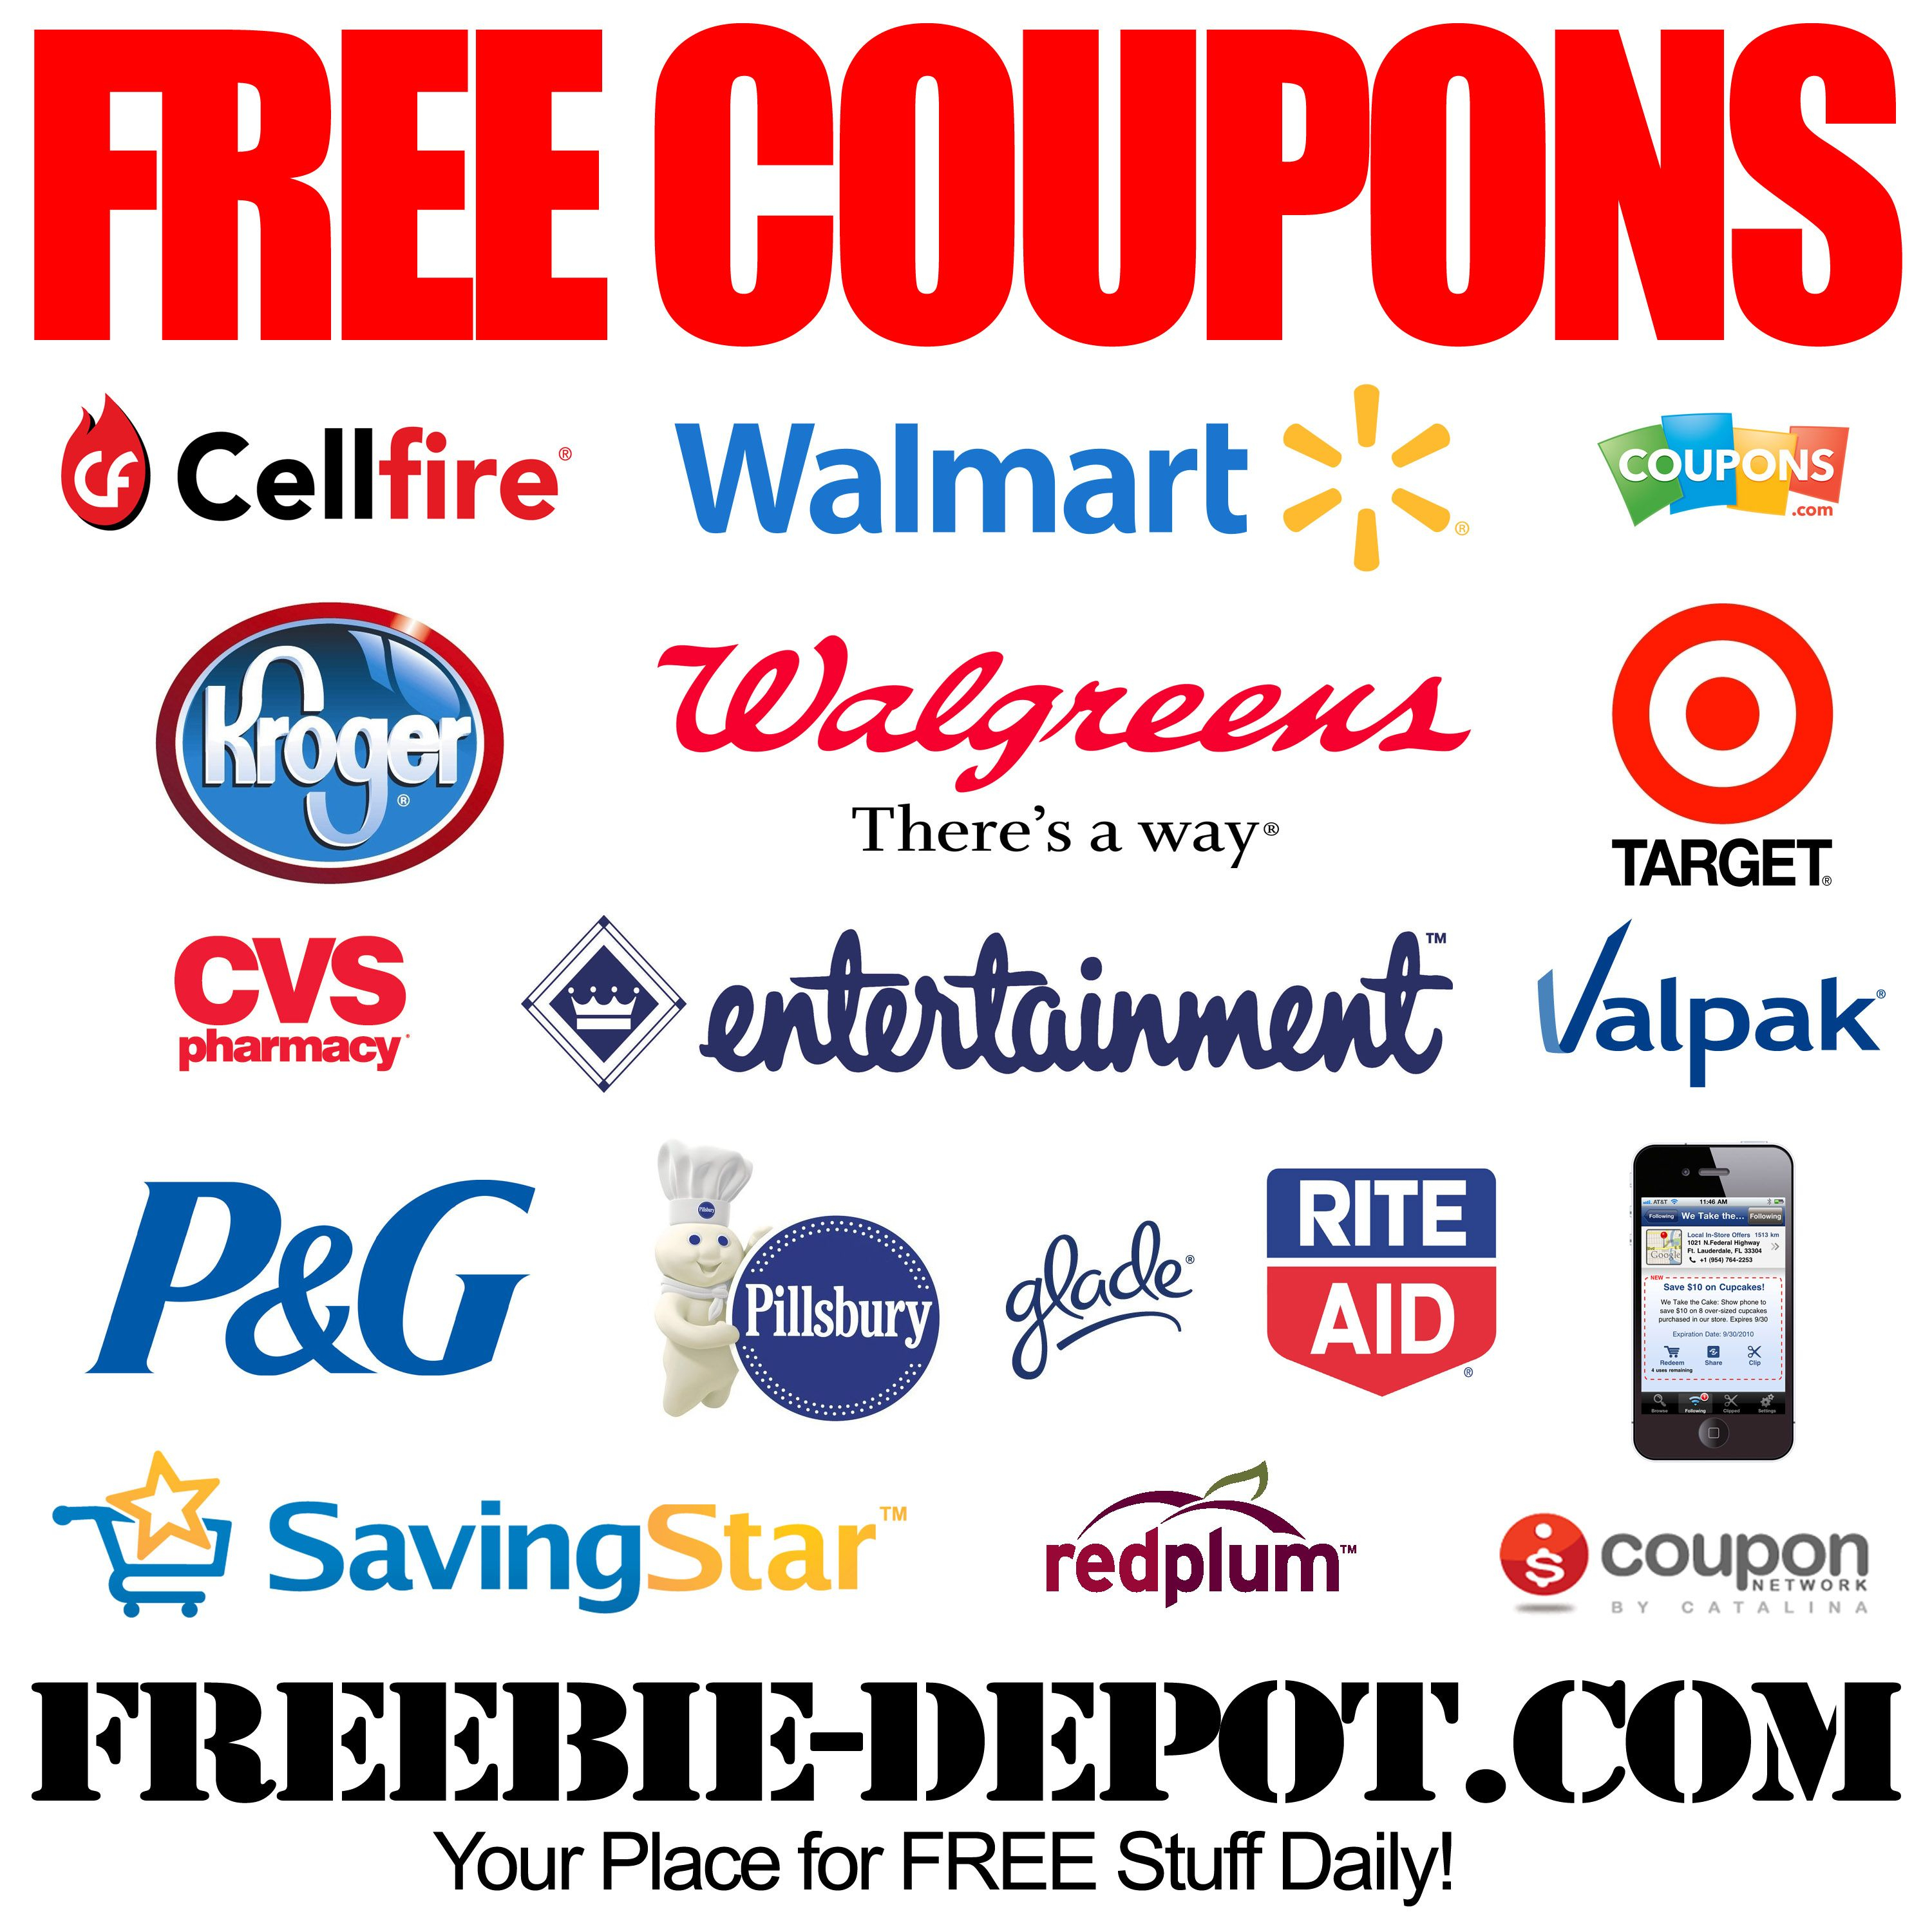 Free Coupons - Free Printable Coupons - Free Grocery Coupons - Free Printable Las Vegas Coupons 2014